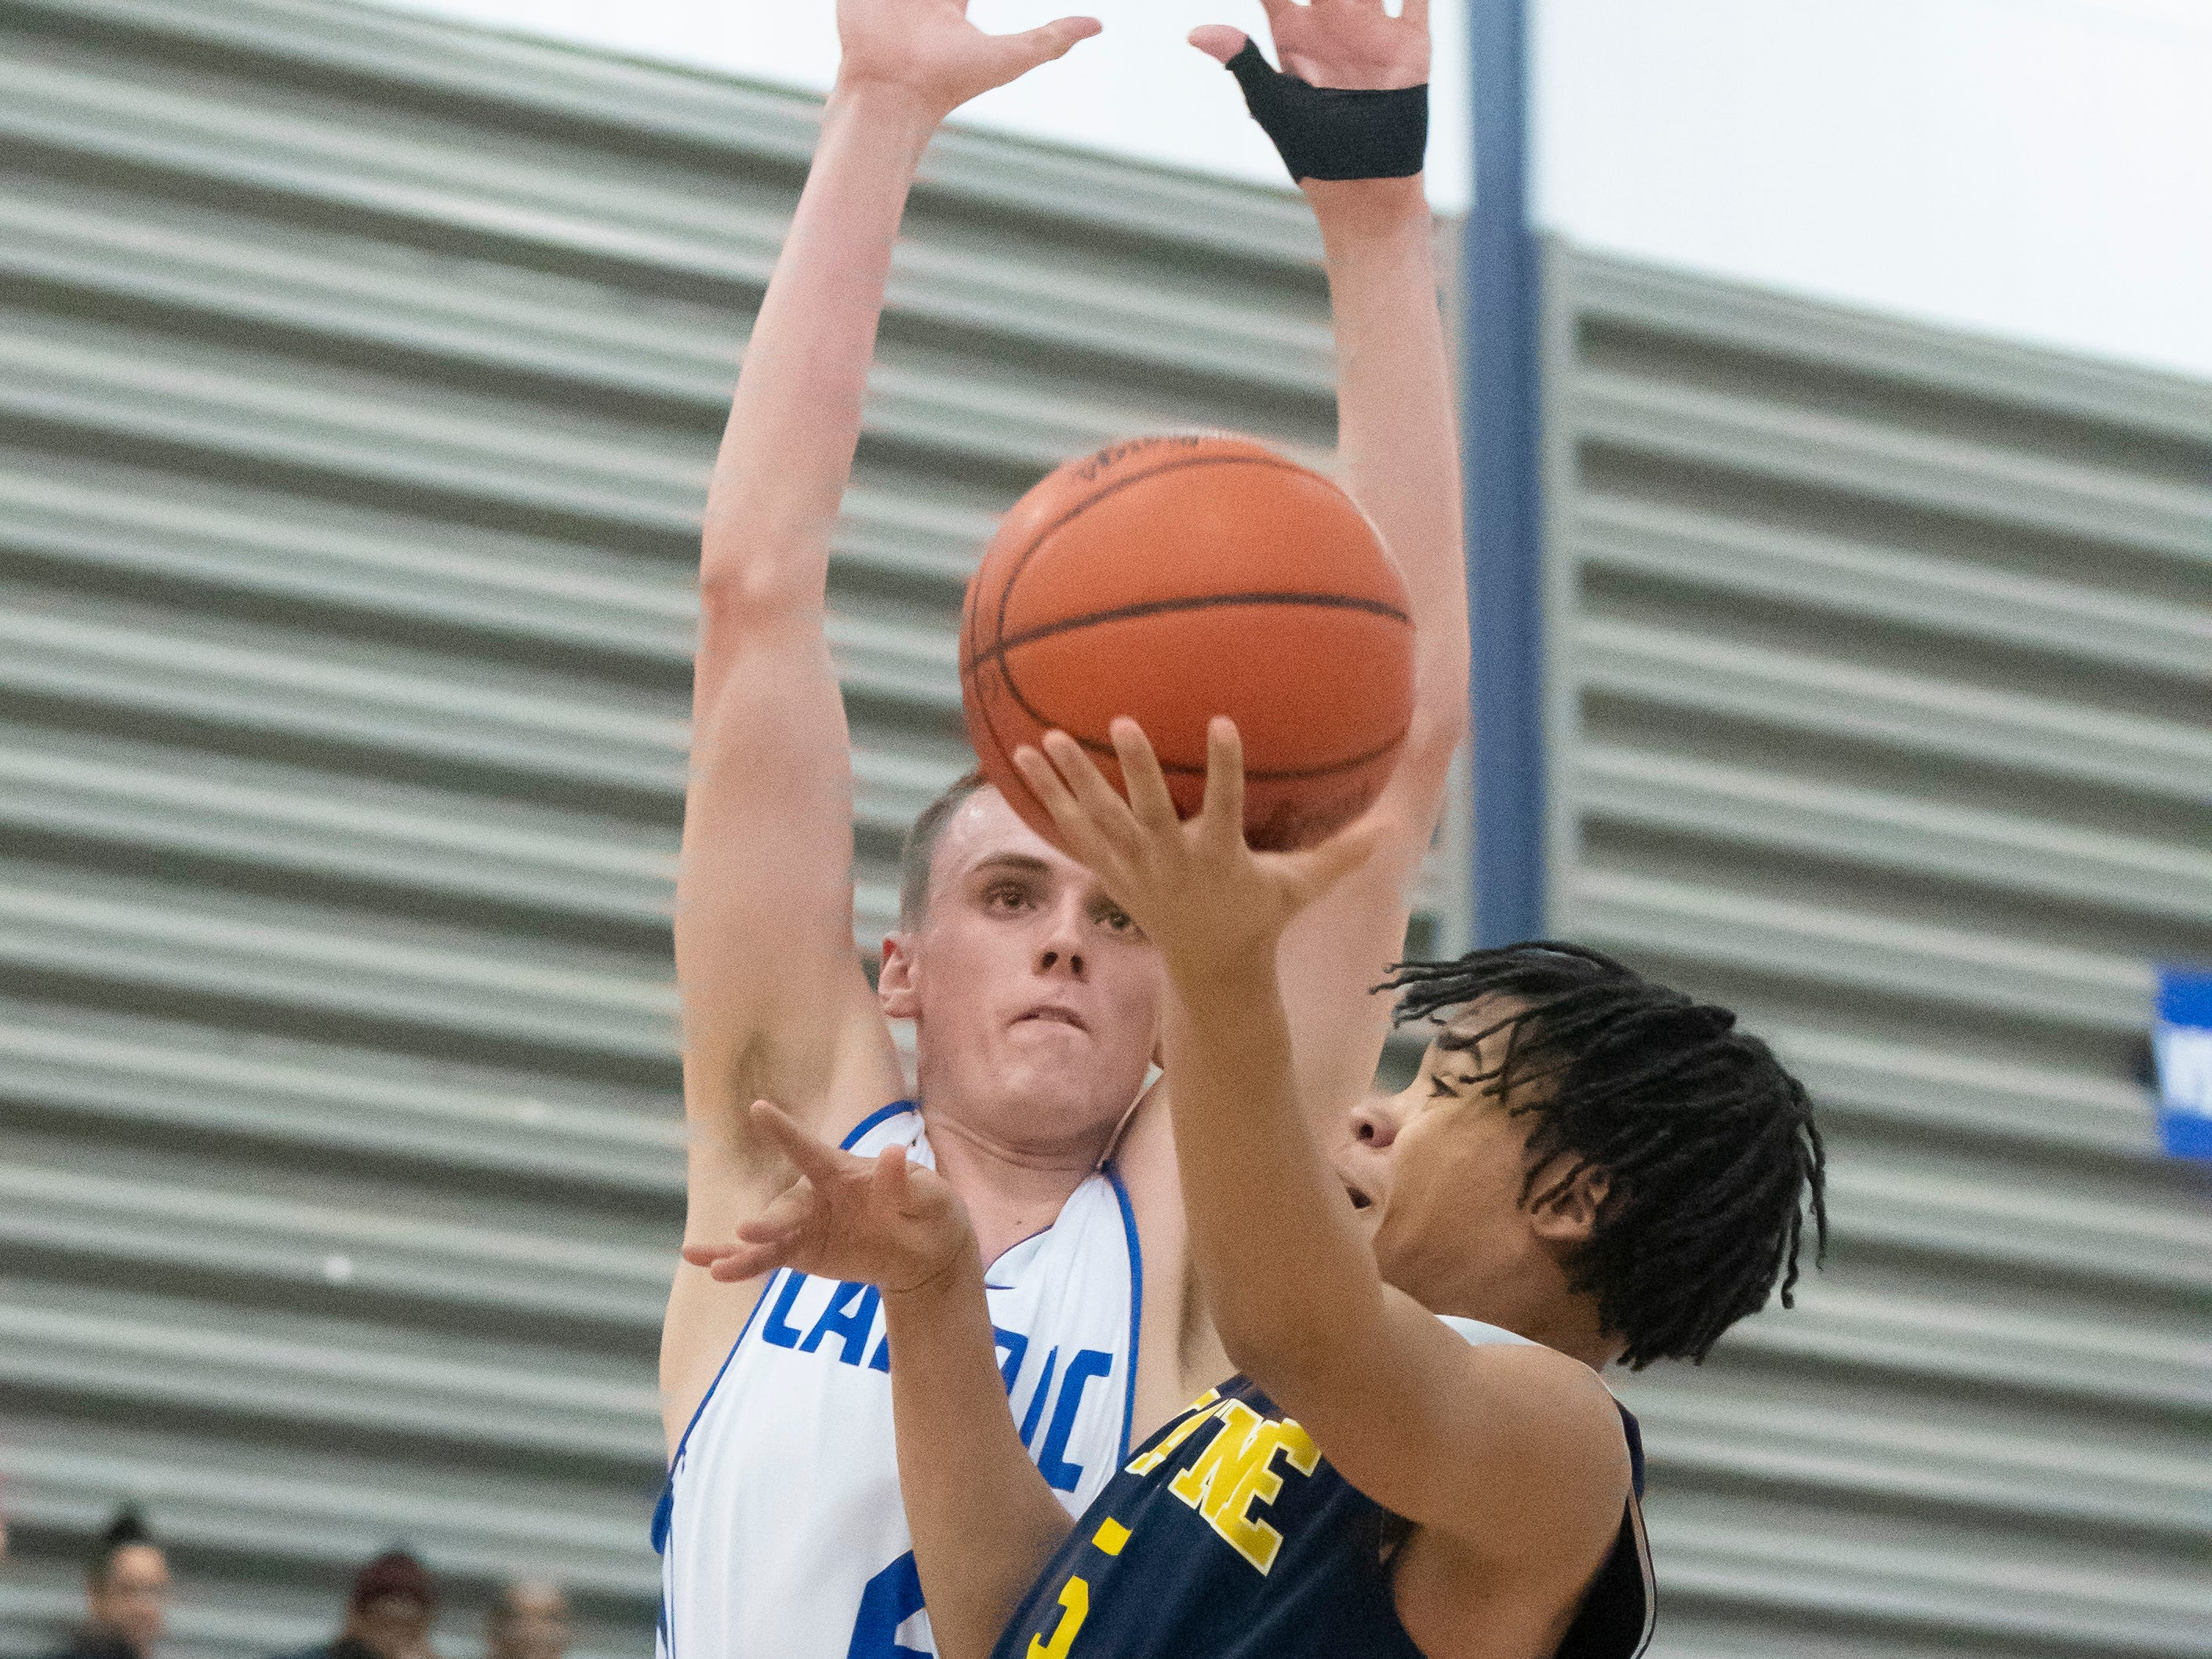 Detroit Catholic Central's Brendan Downs tries to stop a shot by Wayne Memorial guard Kenneth Bowie in the first half.